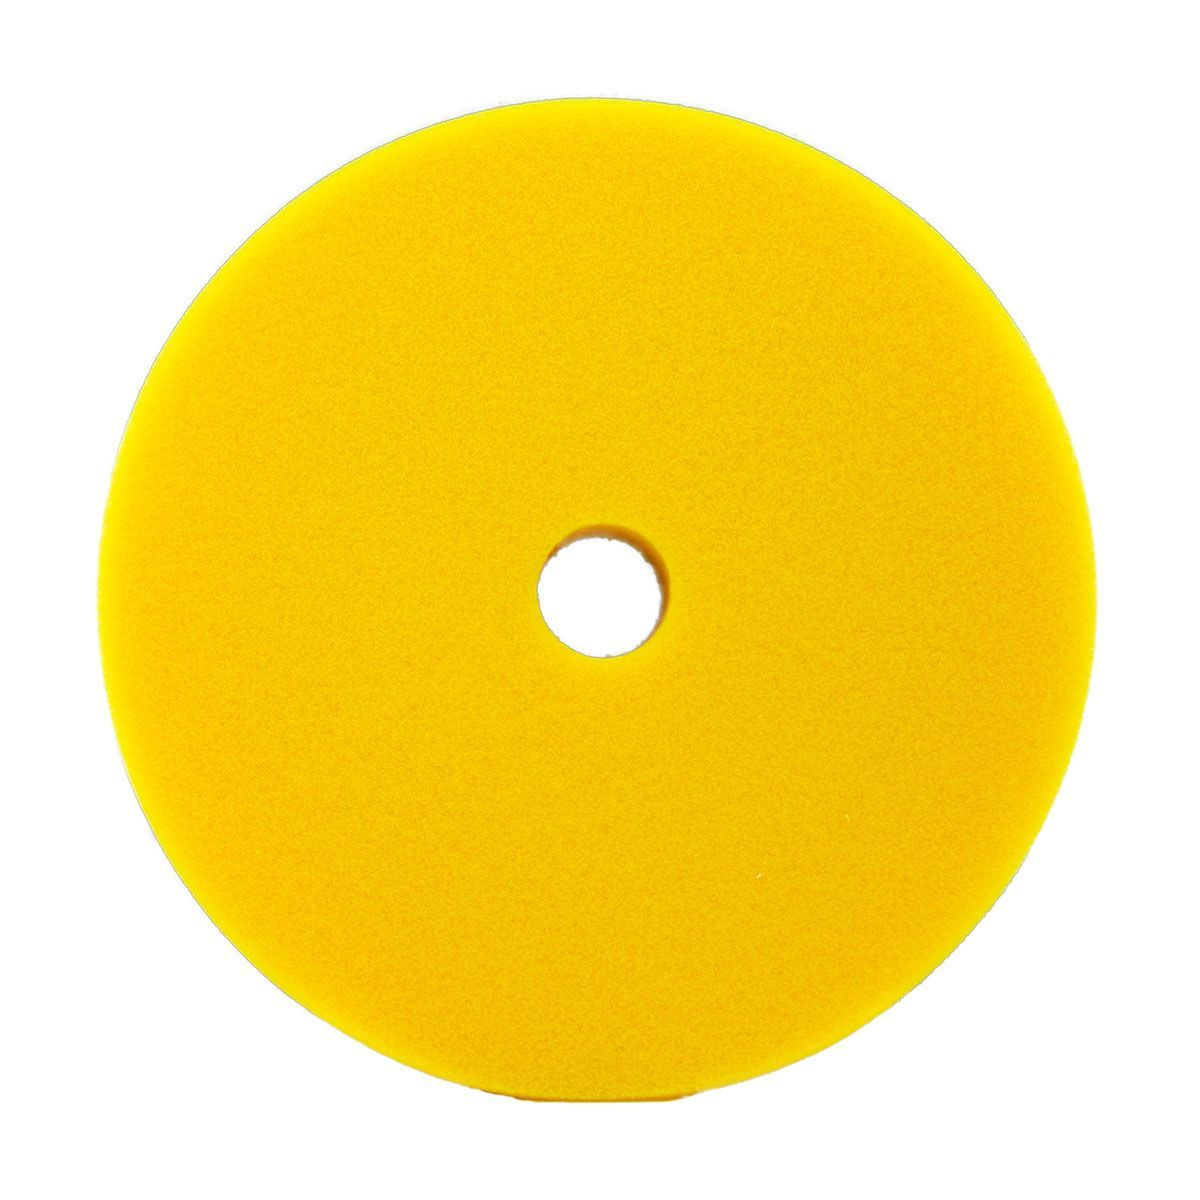 Rupes Yellow Polishing Foam Pad is soft enough to provide a swirl-free finish